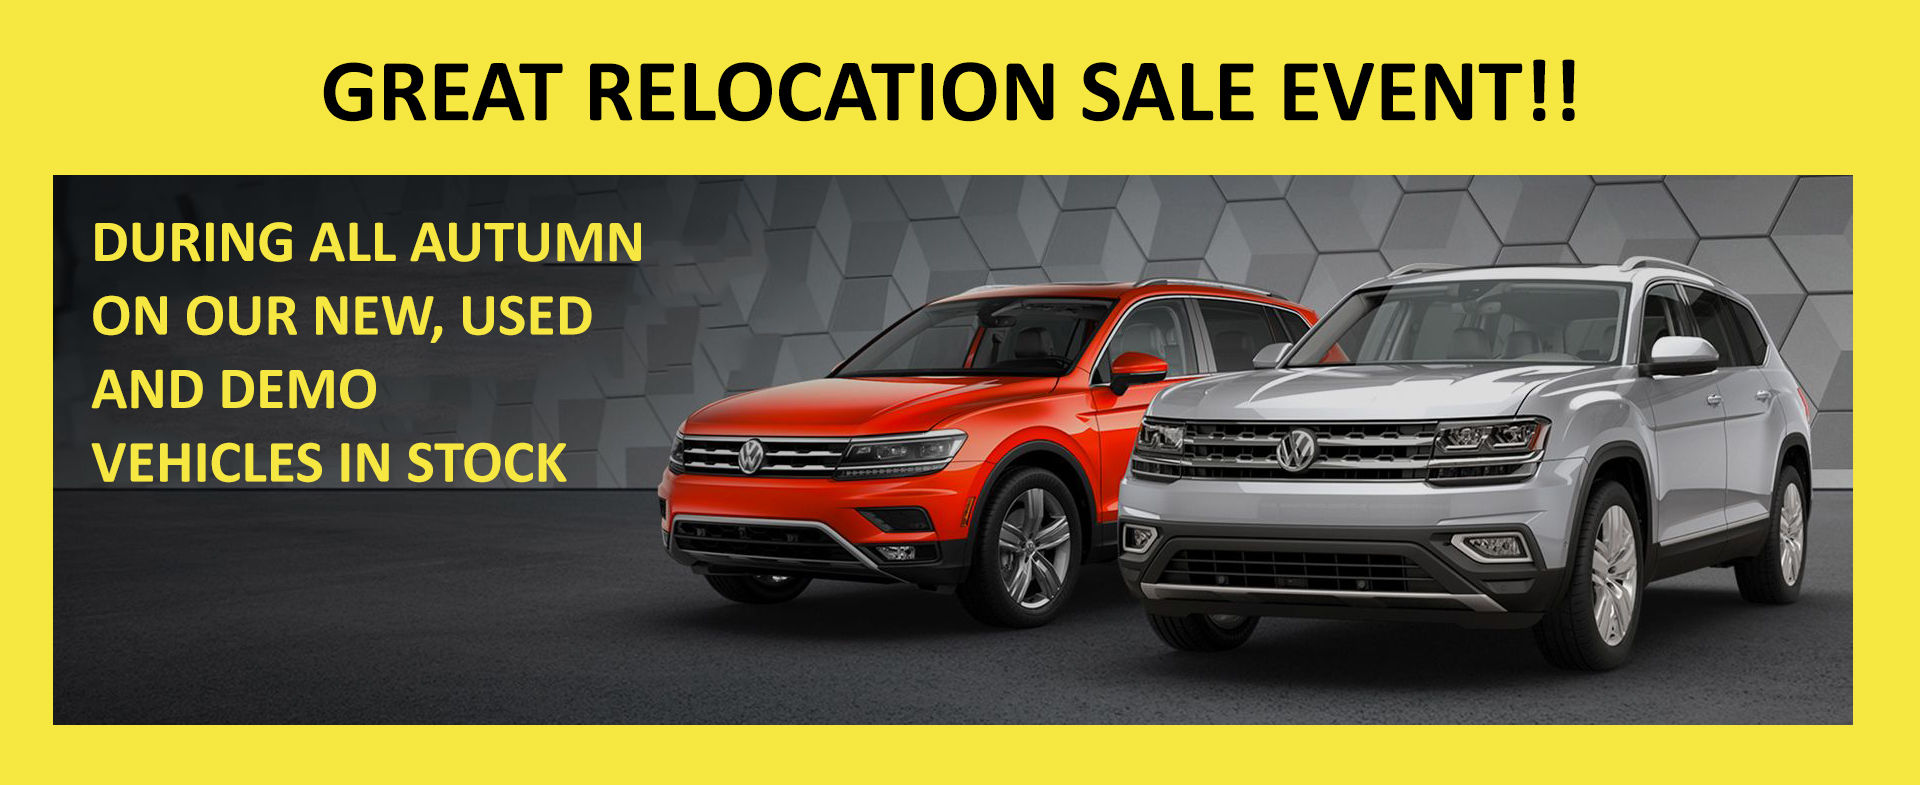 Great relocation sale event !!